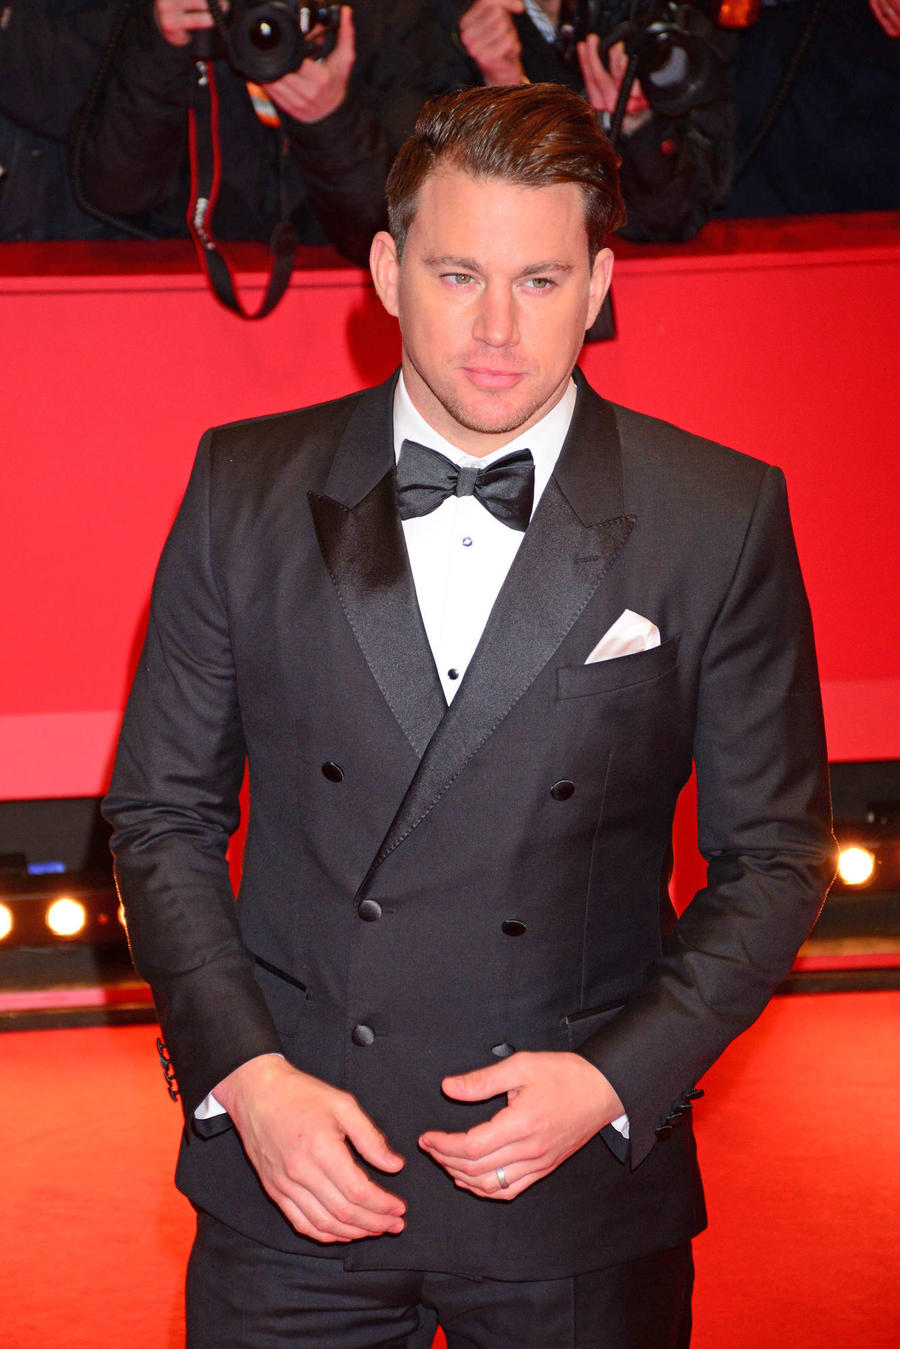 Channing Tatum Joins Cast Of Kingsman Sequel